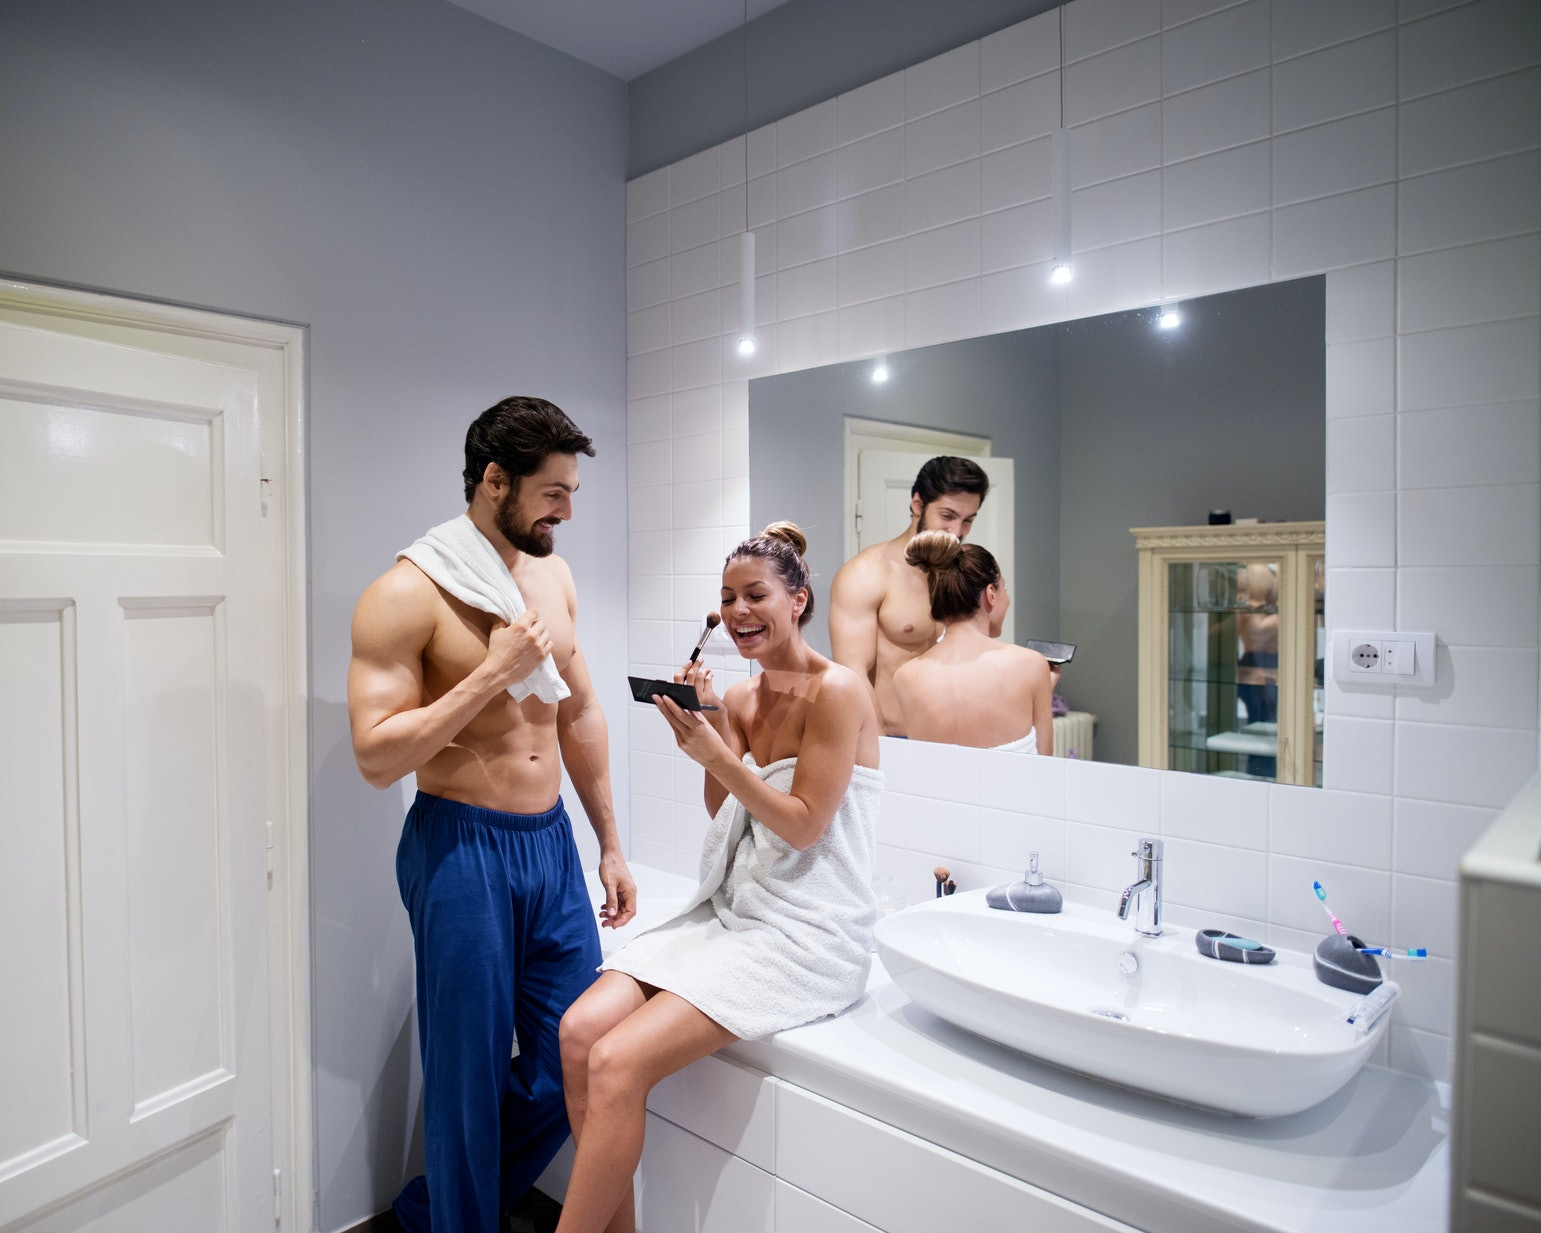 9 Things All Couples Should Vs Shouldn T Do In The Bathroom Together